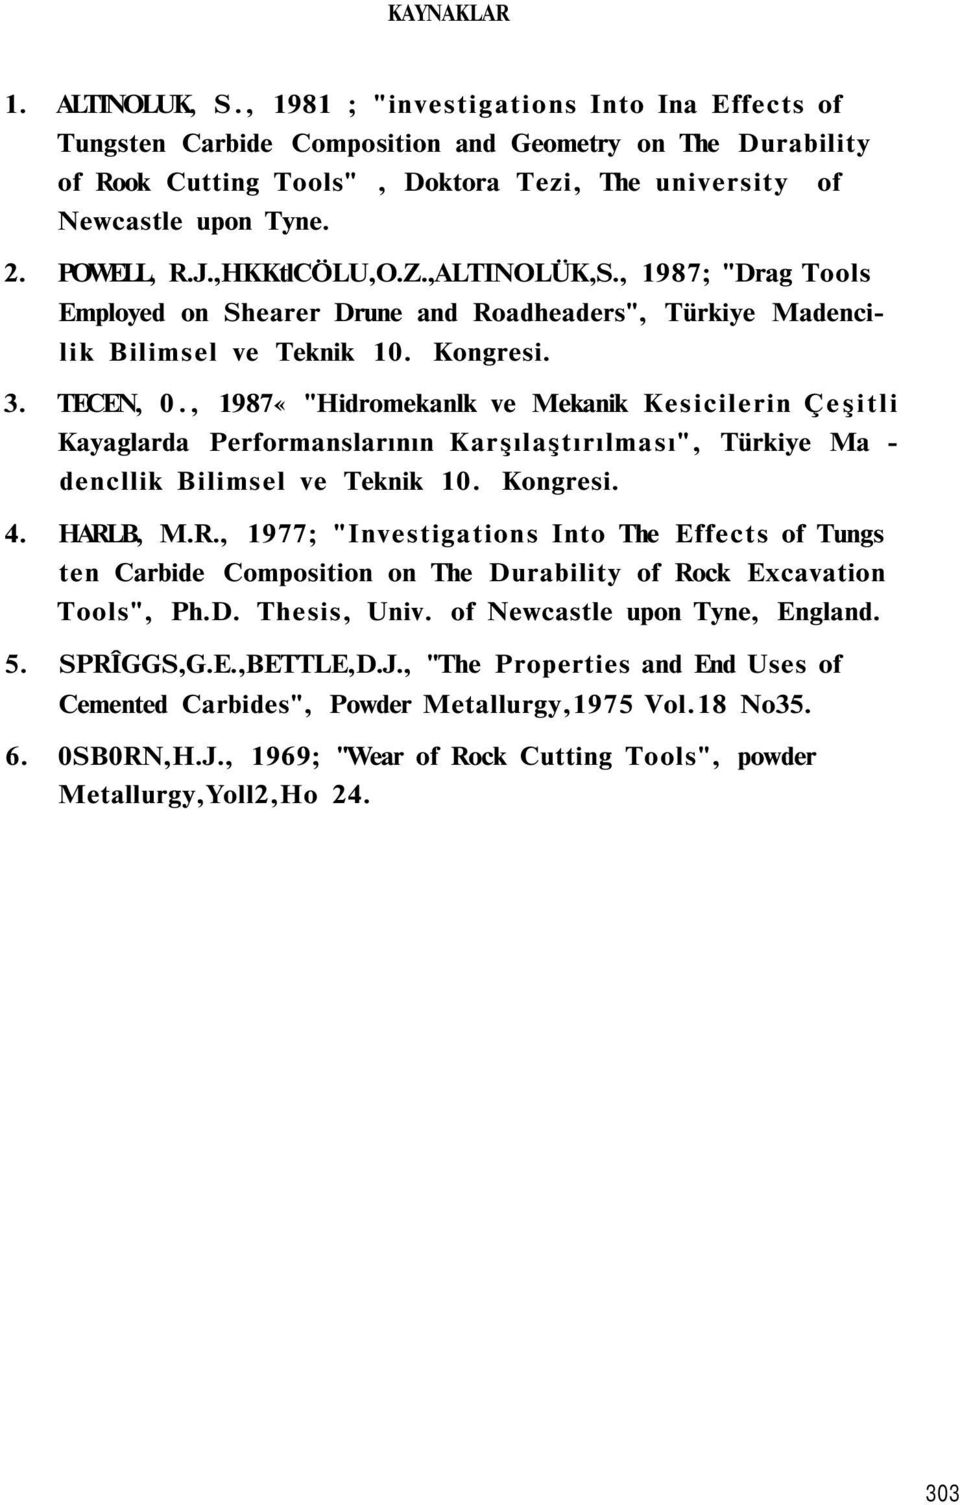 ",HKKtlCÖLU,O.Z.,ALTINOLÜK,S., 1987; ""Drag Tools Employed on Shearer Drune and Roadheaders"", Türkiye Madencilik Bilimsel ve Teknik 10. Kongresi. 3. TECEN, 0."